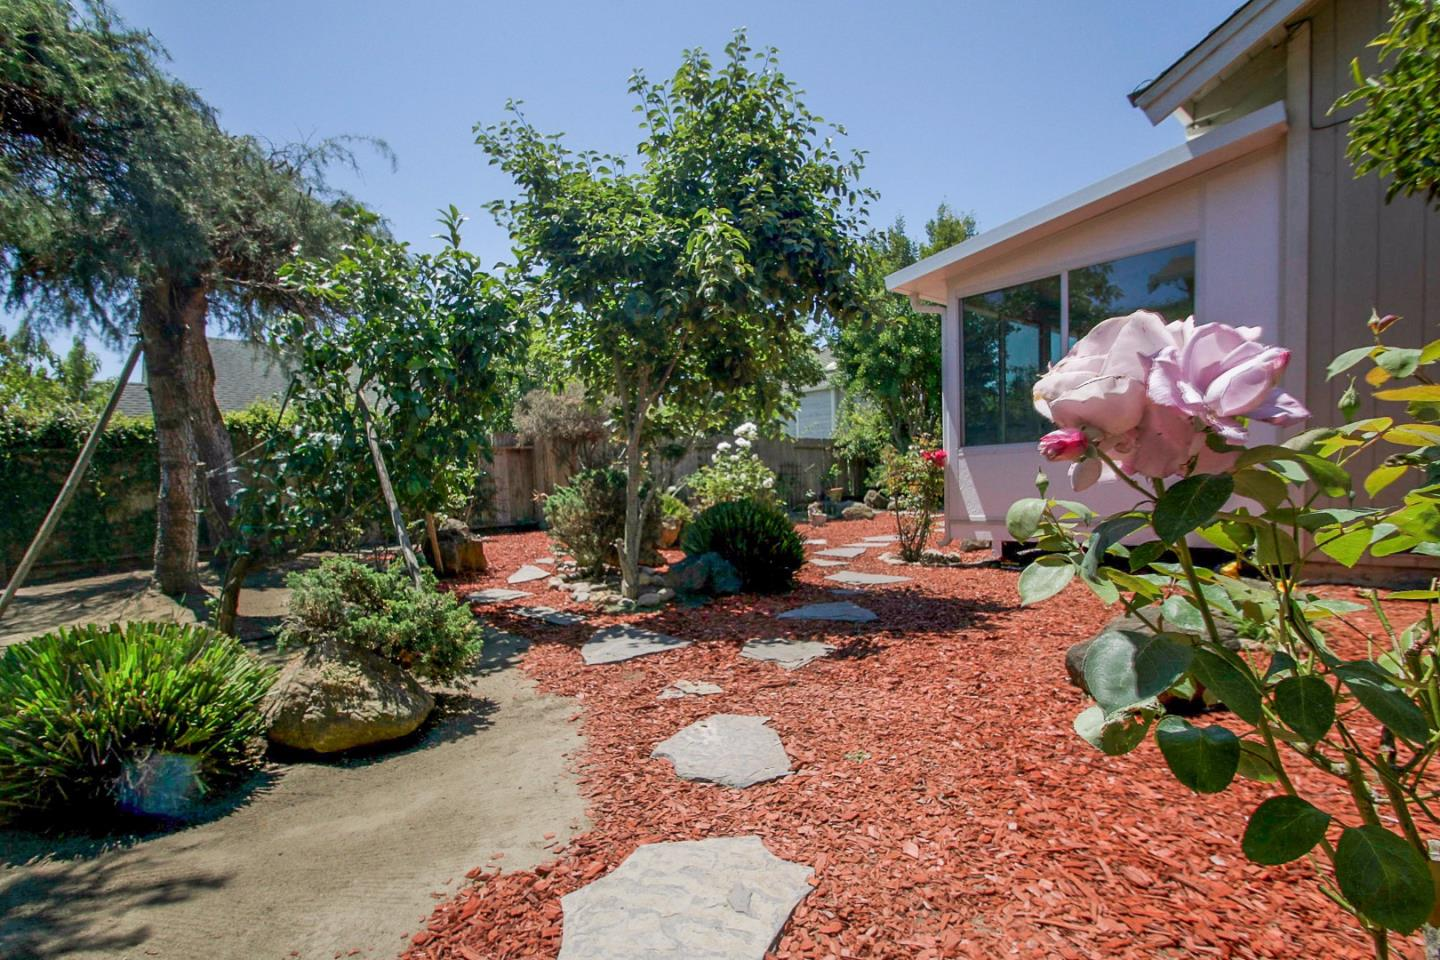 Additional photo for property listing at 357 Arbol Drive  Watsonville, California 95076 United States